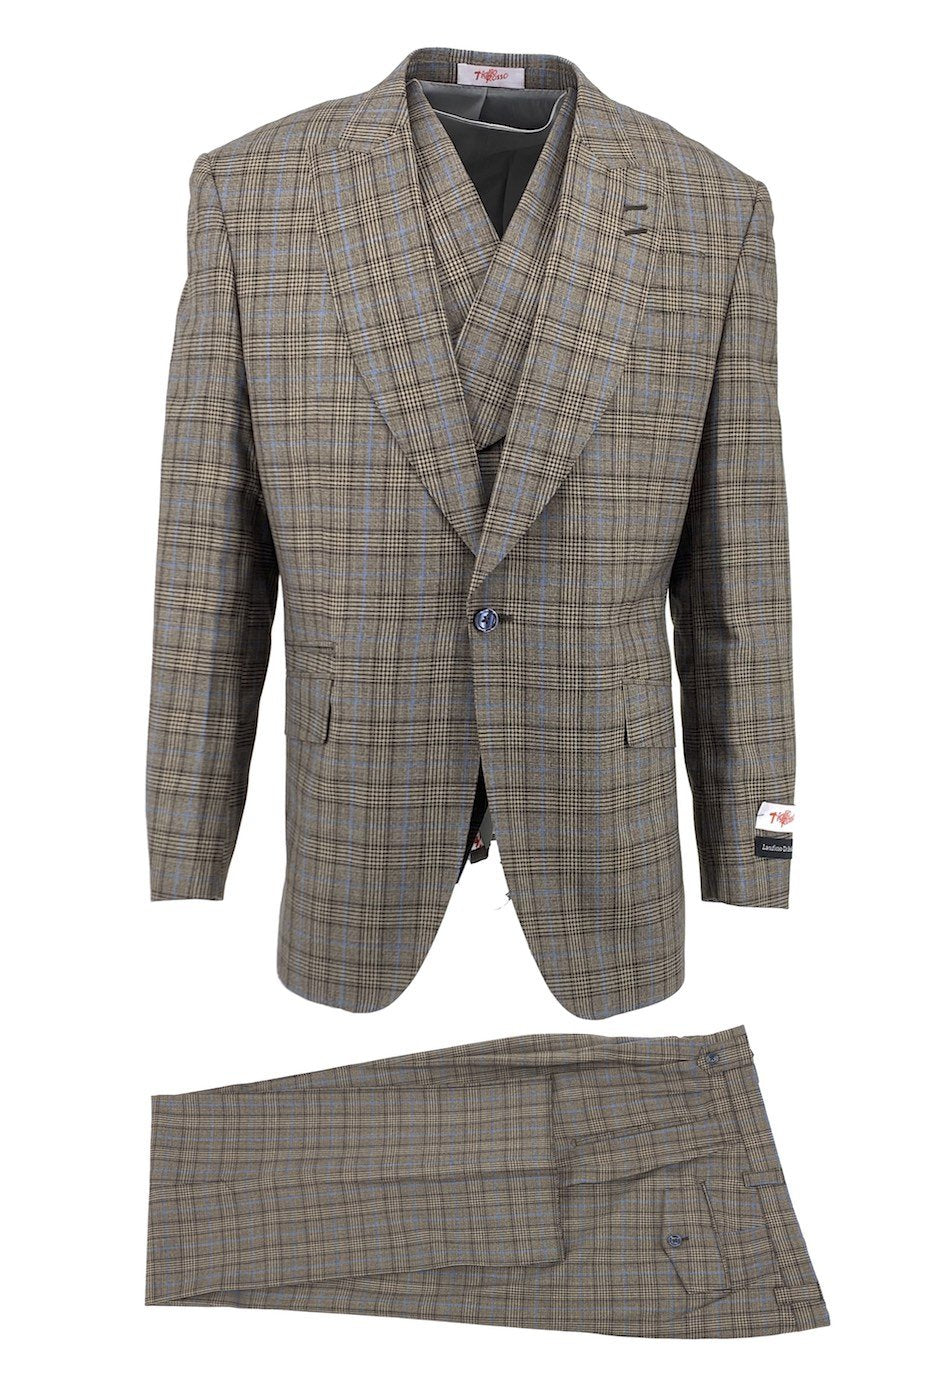 Tiglio Rosso Brown with Light Blue Windowpane New Rosso, Wide Leg Pure Wool Suit & Vest TLS20027/1